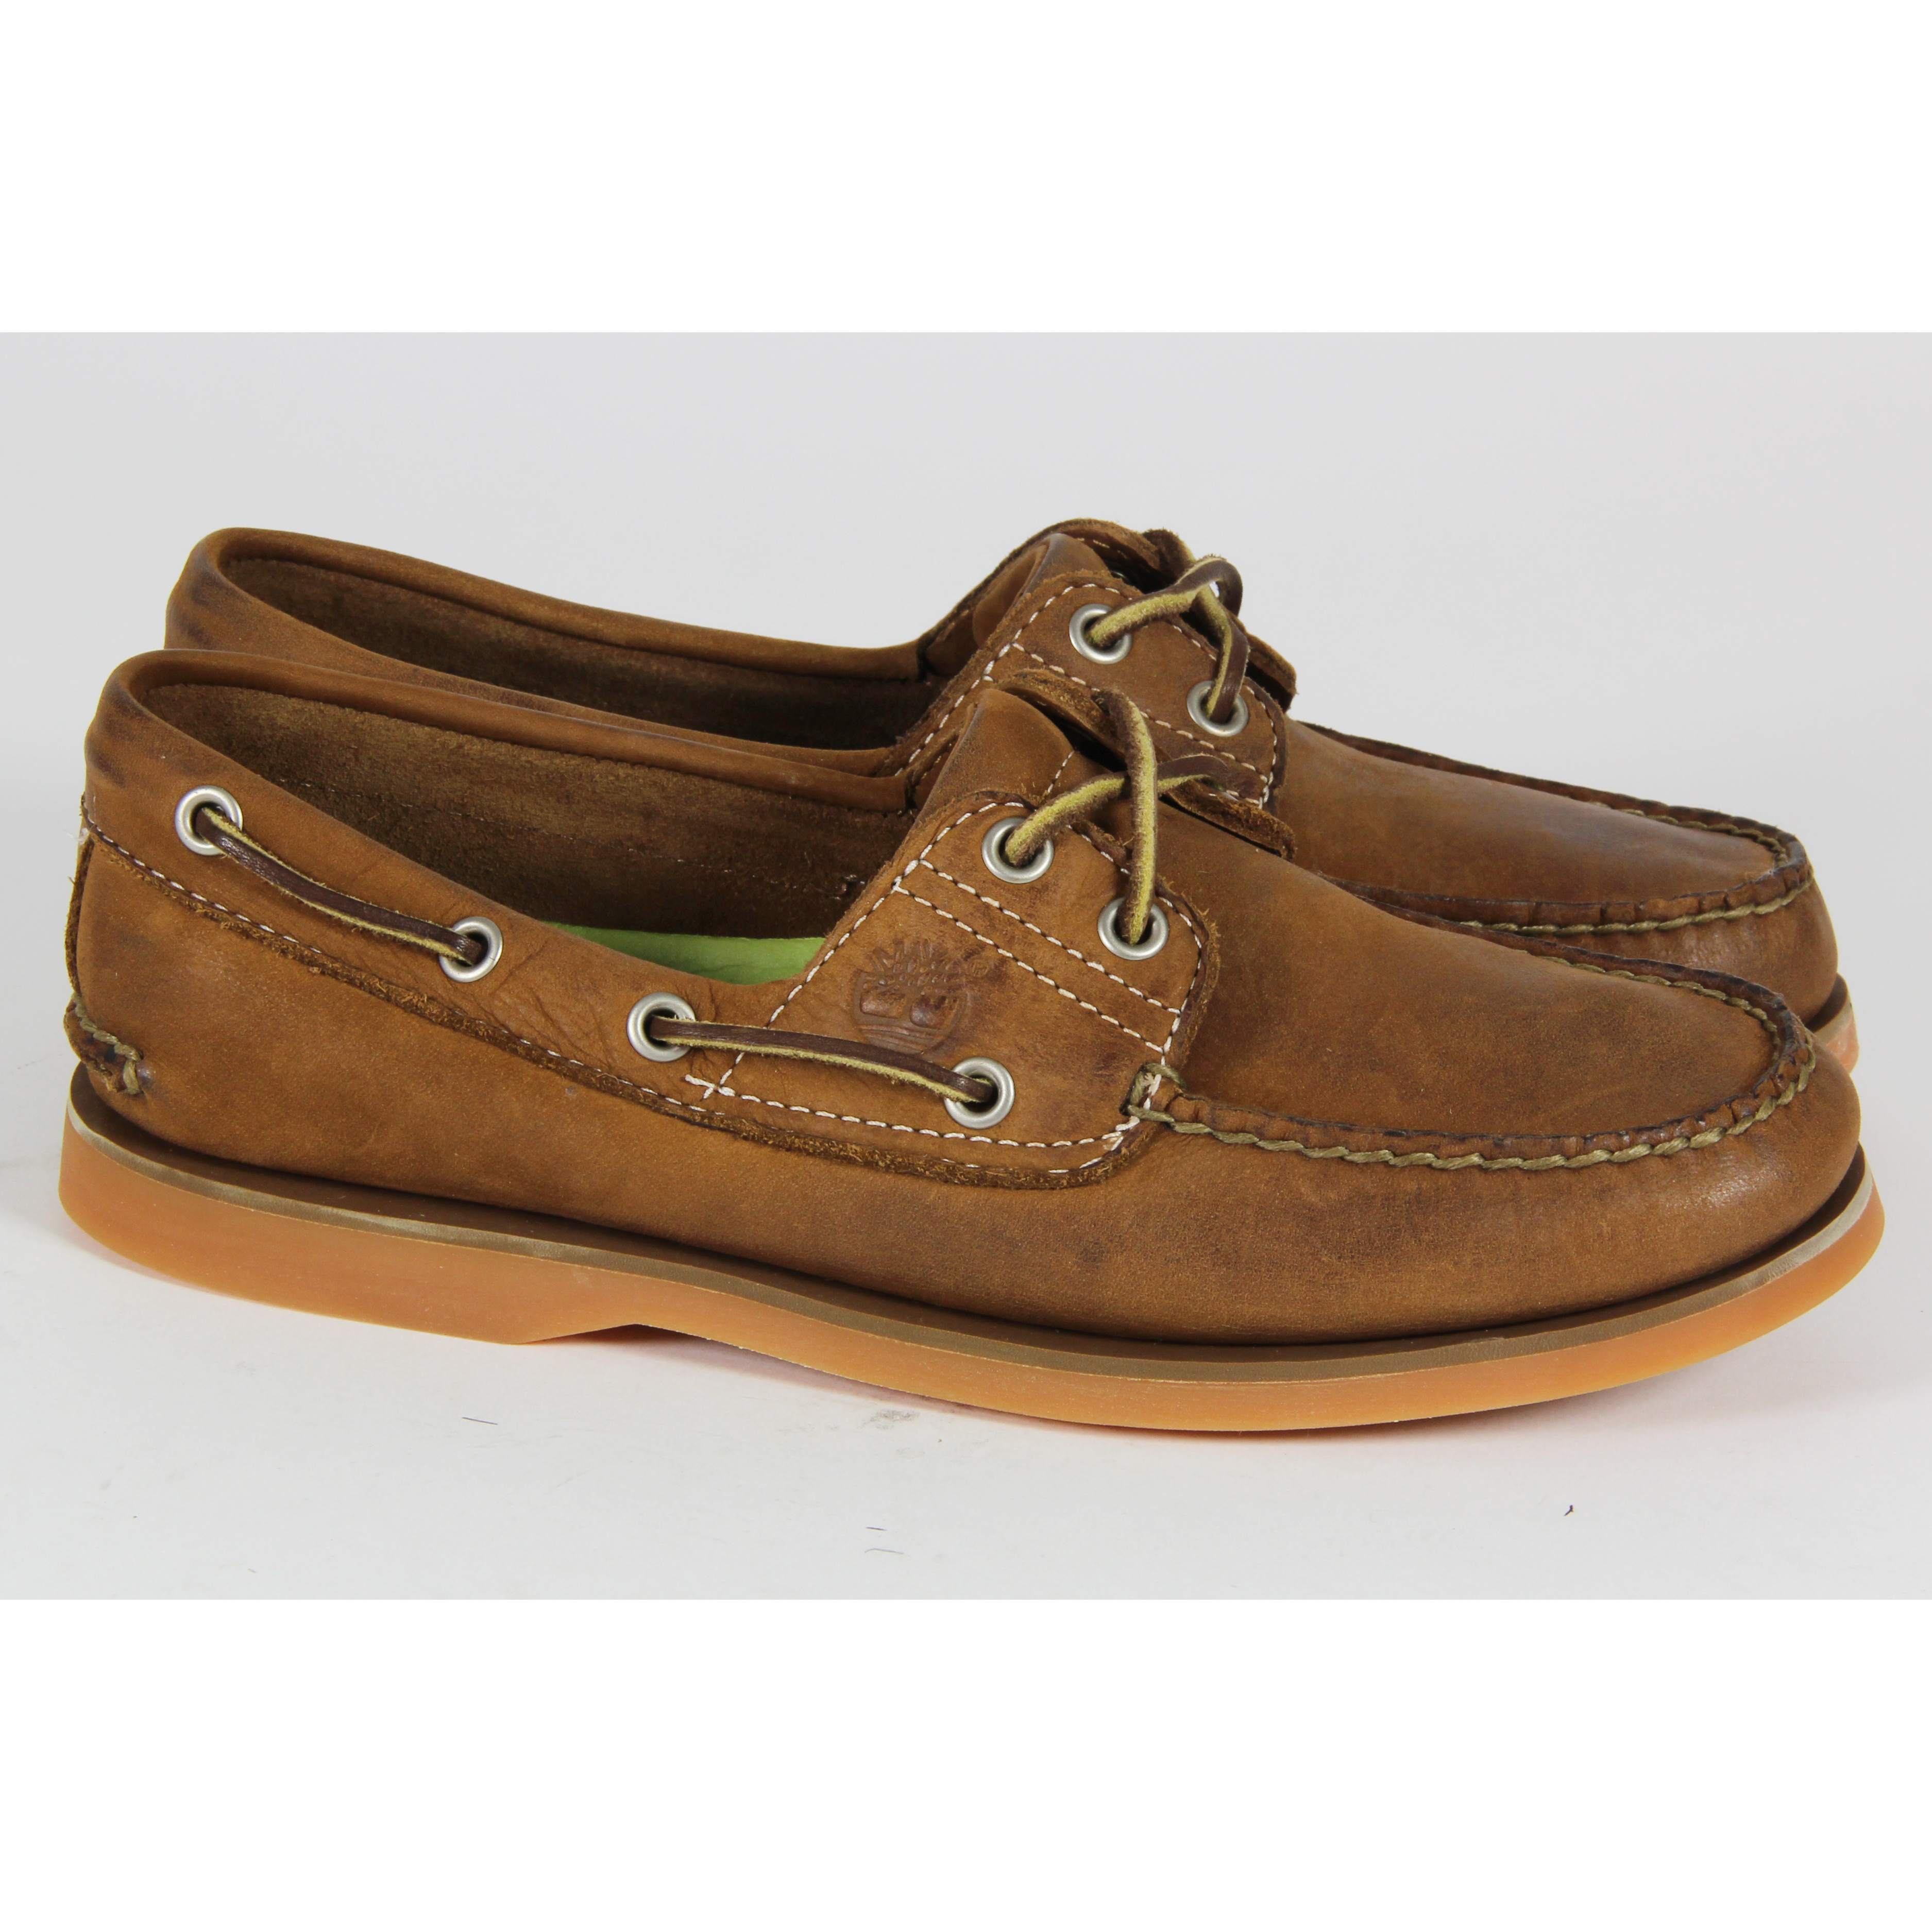 Mens Timberland Casual Lace Up 2 Eye Boat Shoes Leather